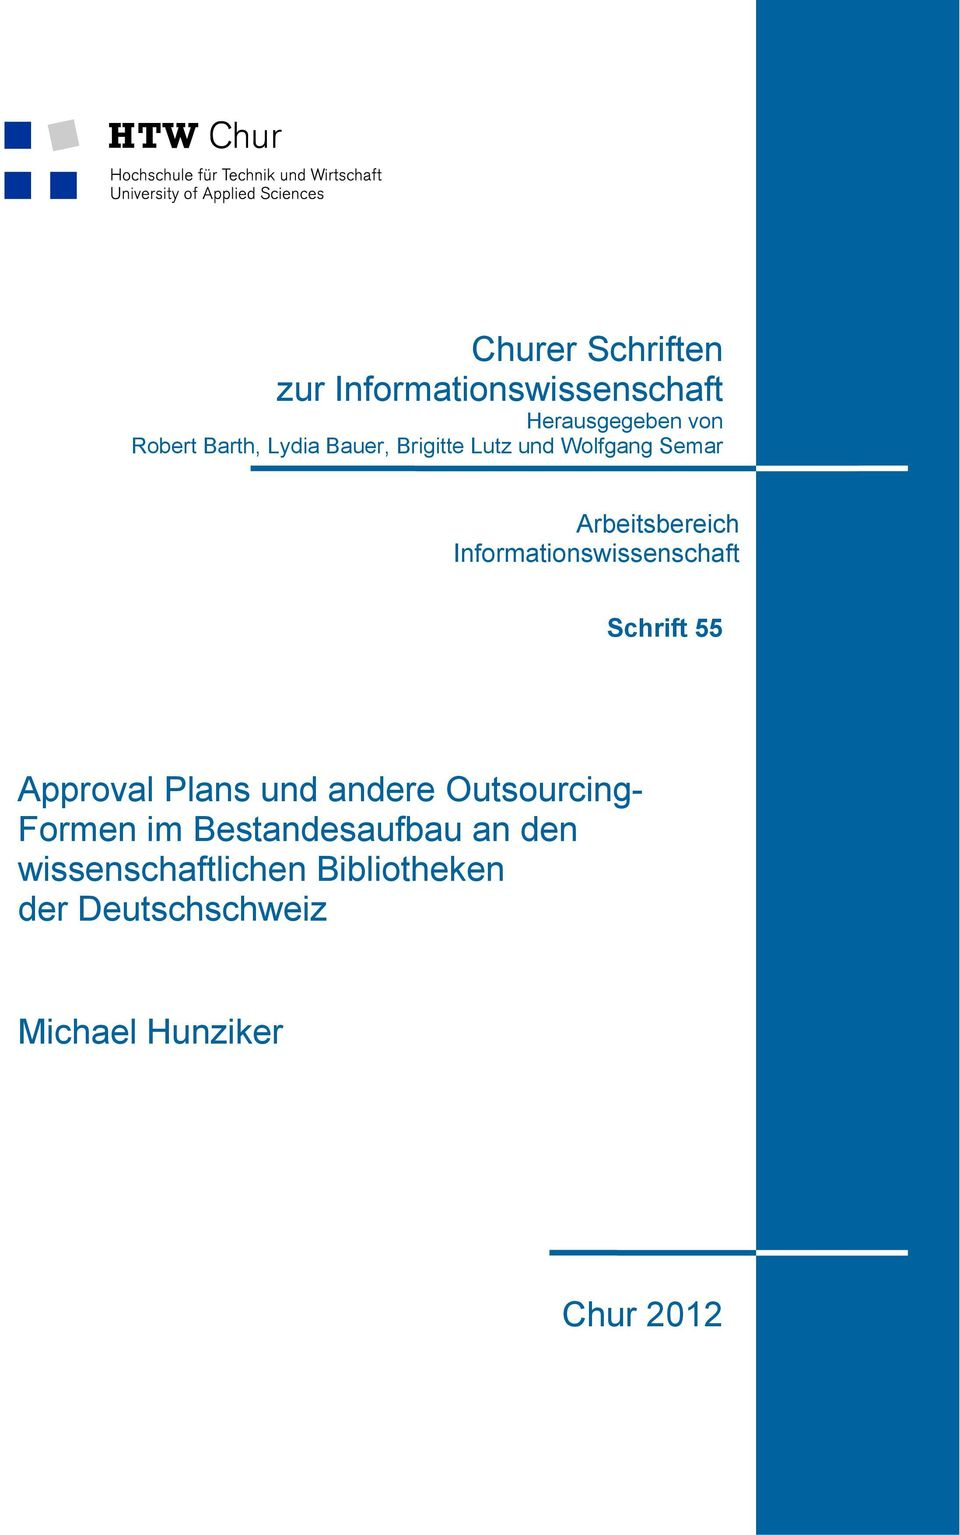 Informationswissenschaft Schrift 55 Approval Plans und andere Outsourcing-